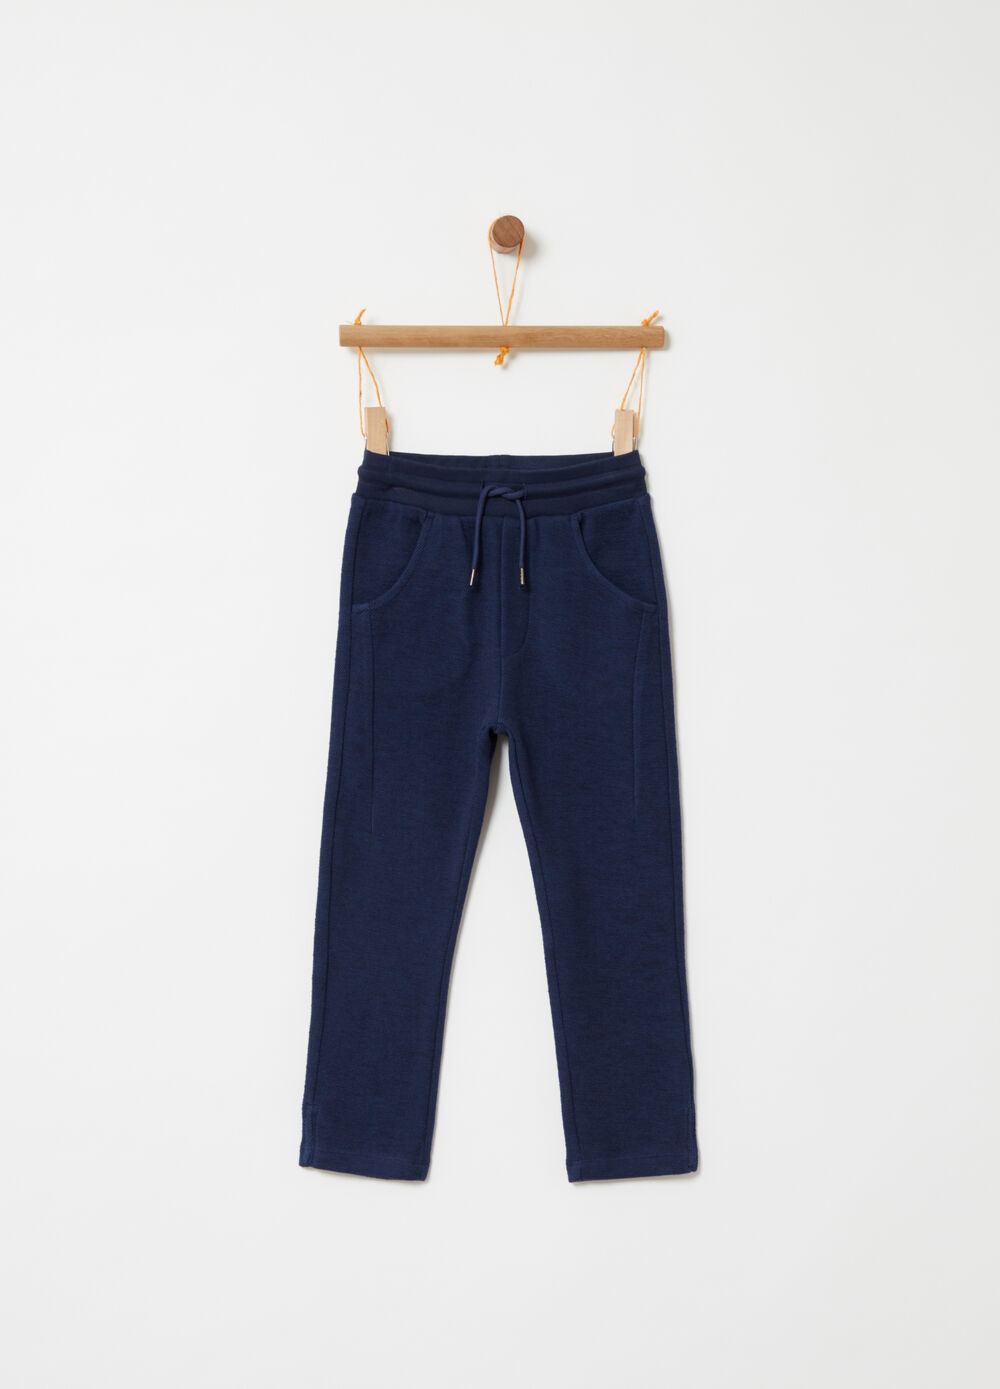 Yarn-dyed trousers with functional pockets